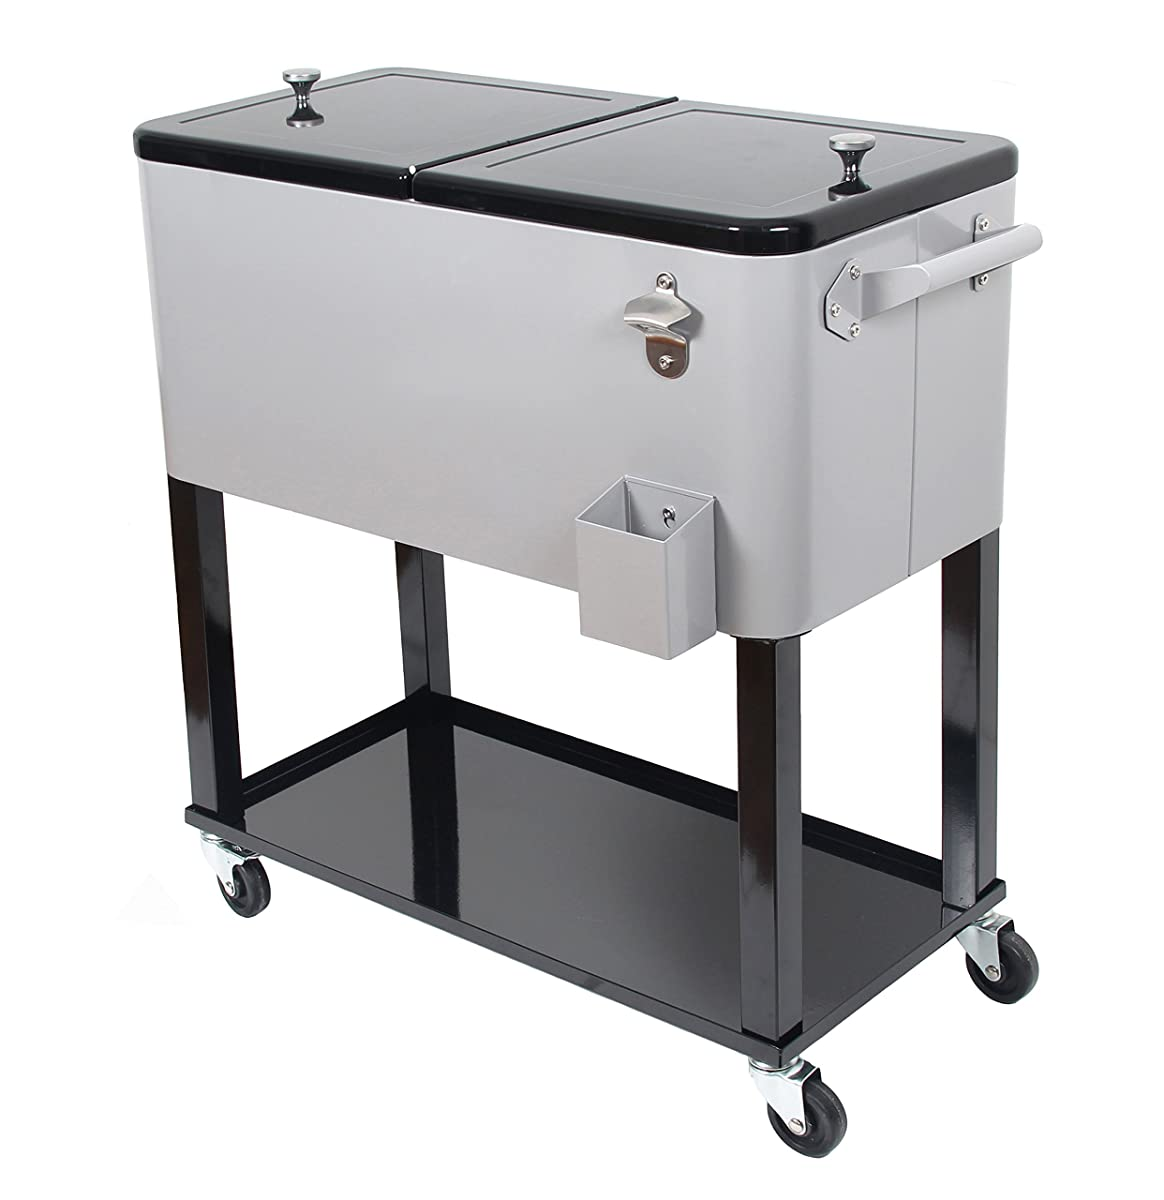 UPHA 80 Quart Rolling Ice Chest Portable Party Bar Drink Entertaining Outdoor Patio Cooler Cart on Wheels with Shelf,Silvery